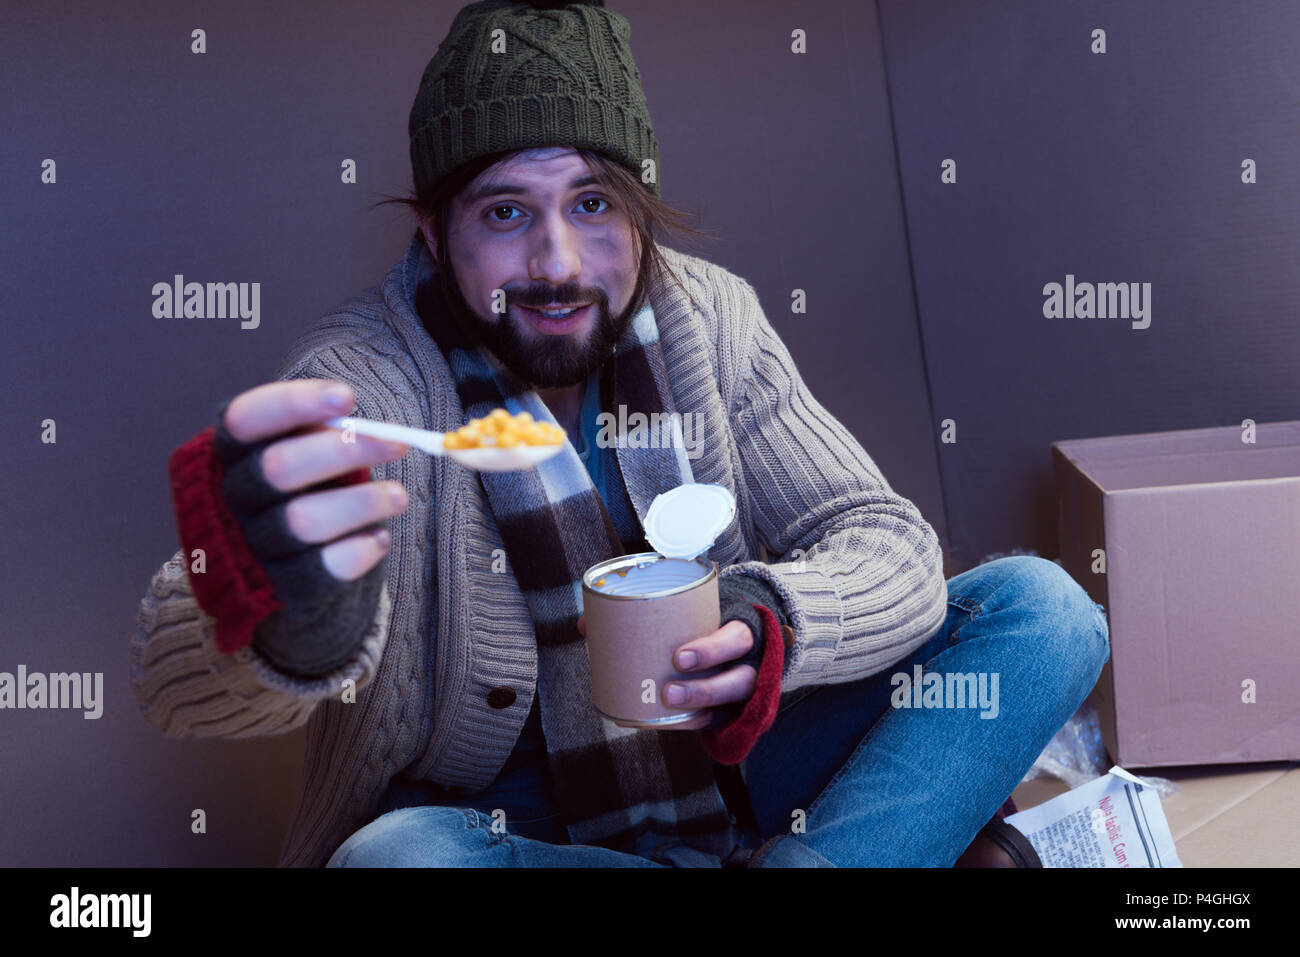 3b33ed21cd5 smiling homeless man eating canned food in cardboard box - Stock Image